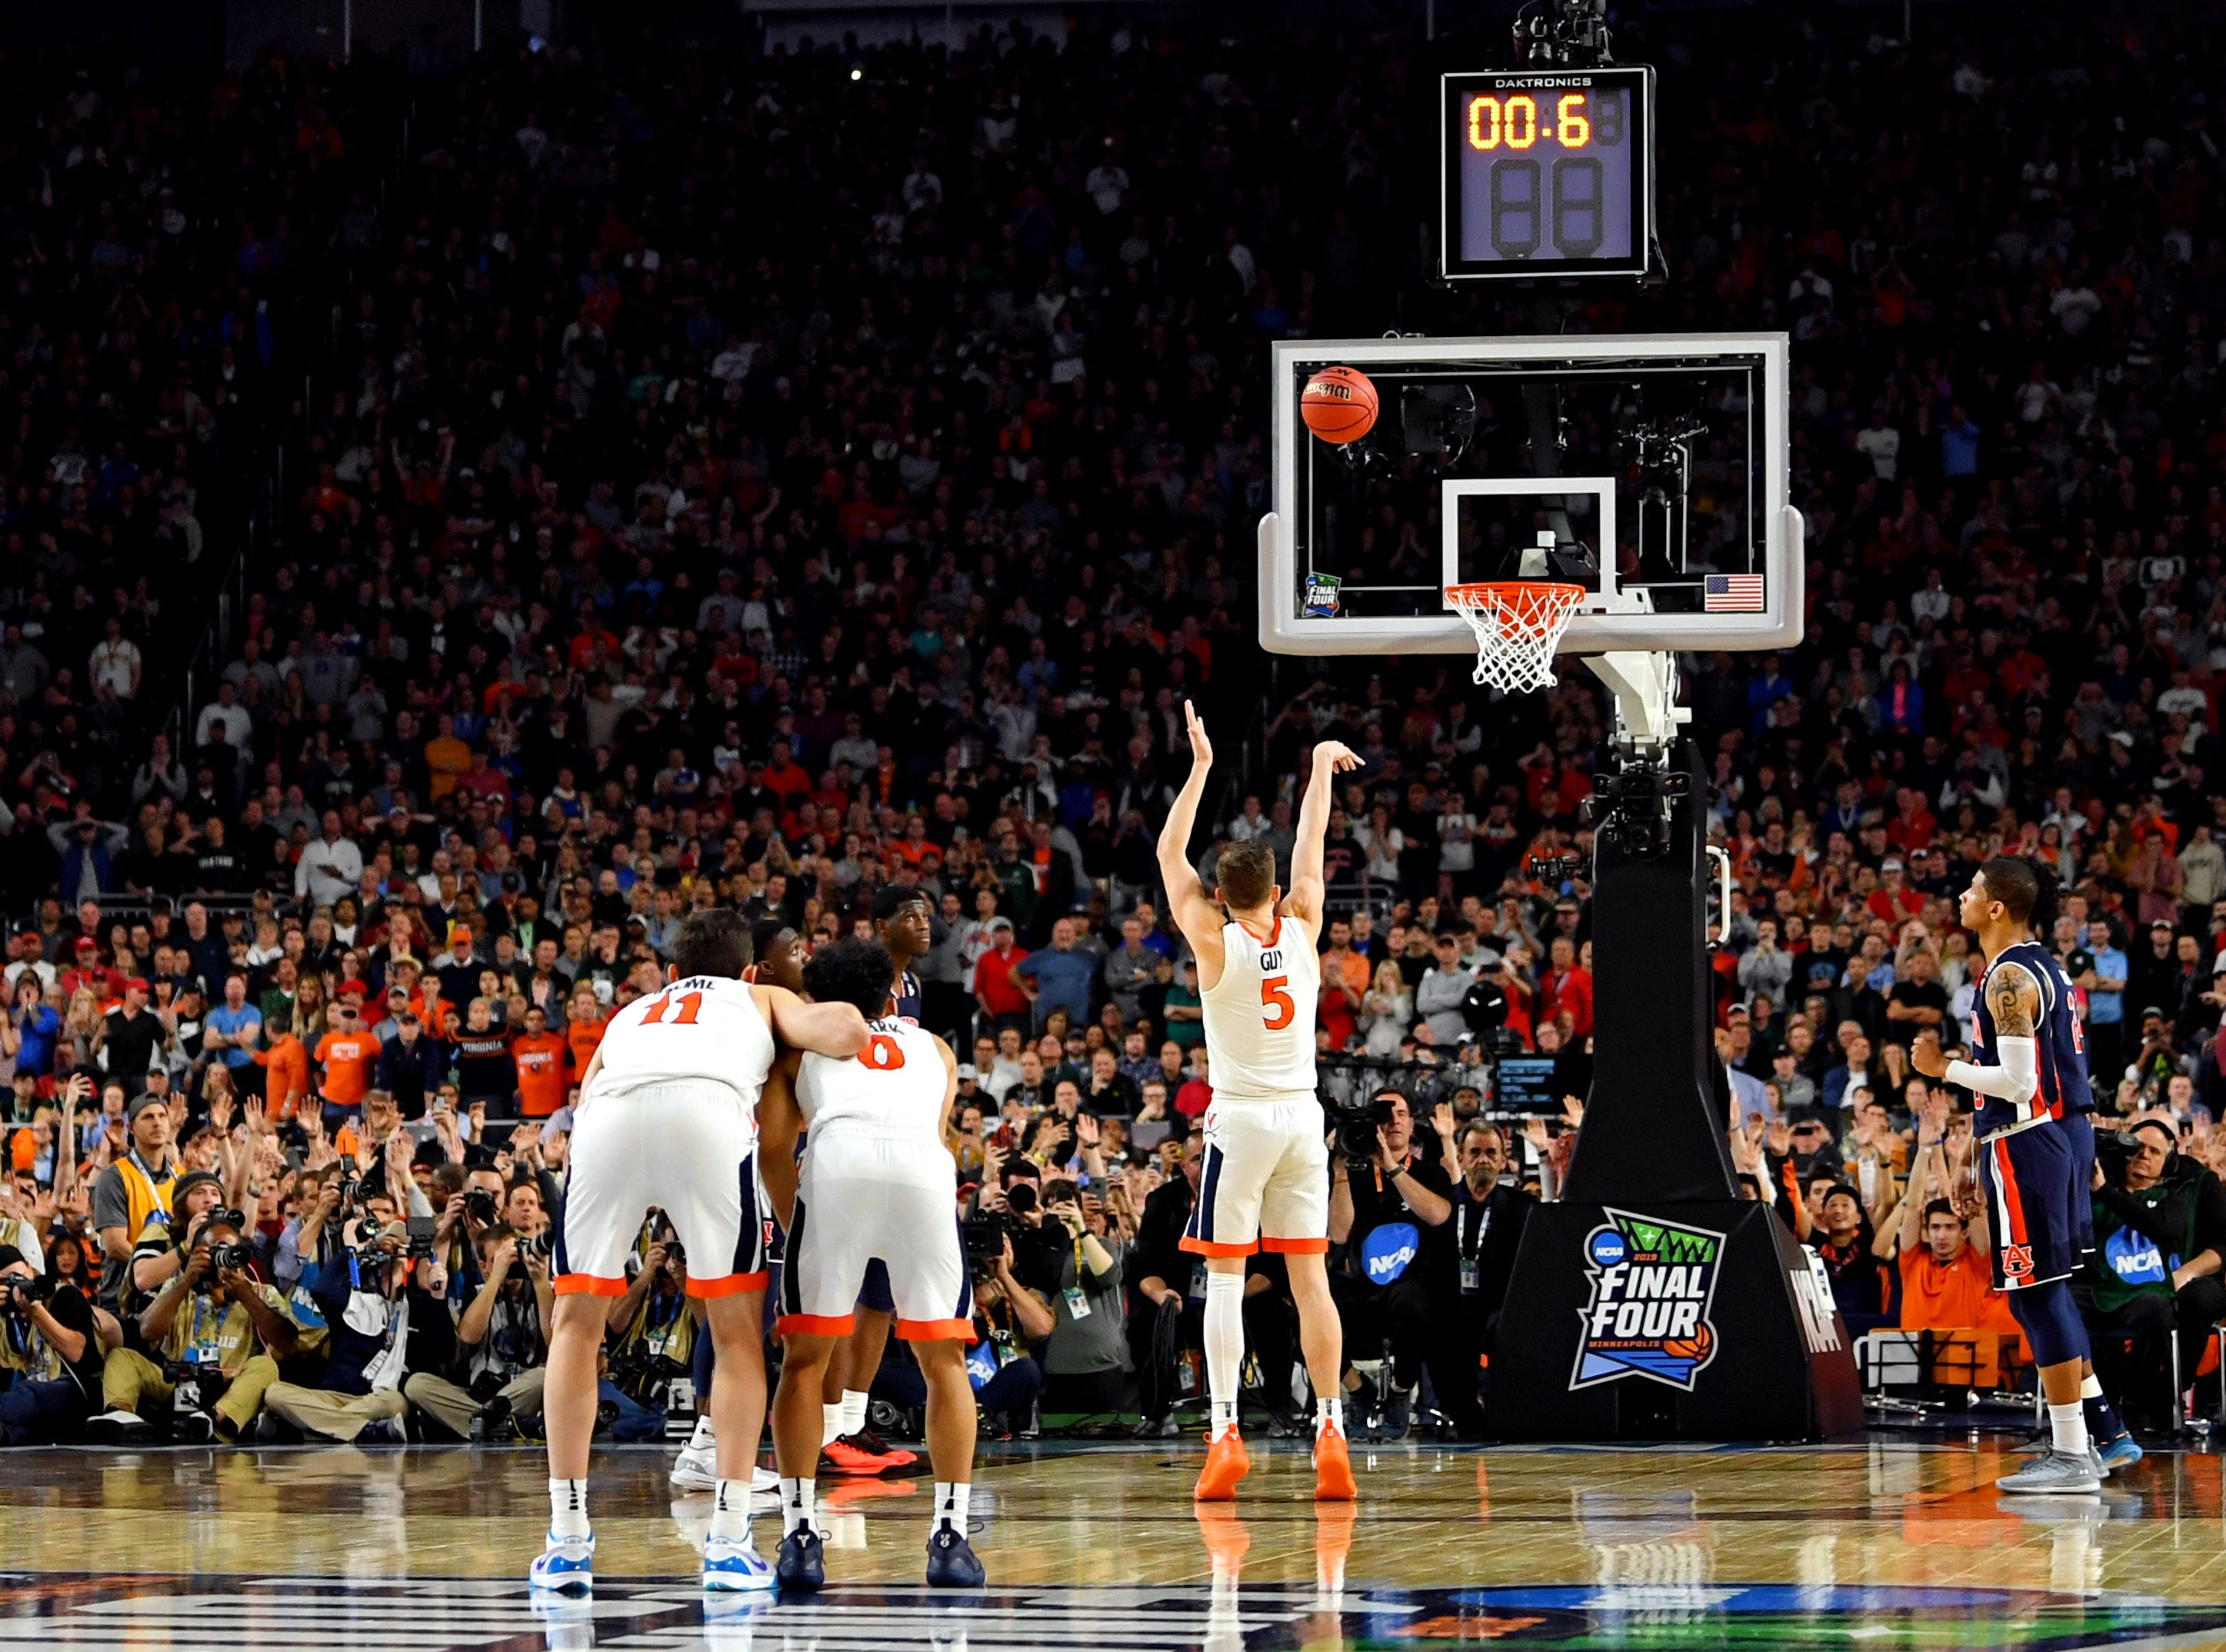 Virginia Cavaliers guard Kyle Guy (5) shoots the game-winning free throws against the Auburn Tigers.